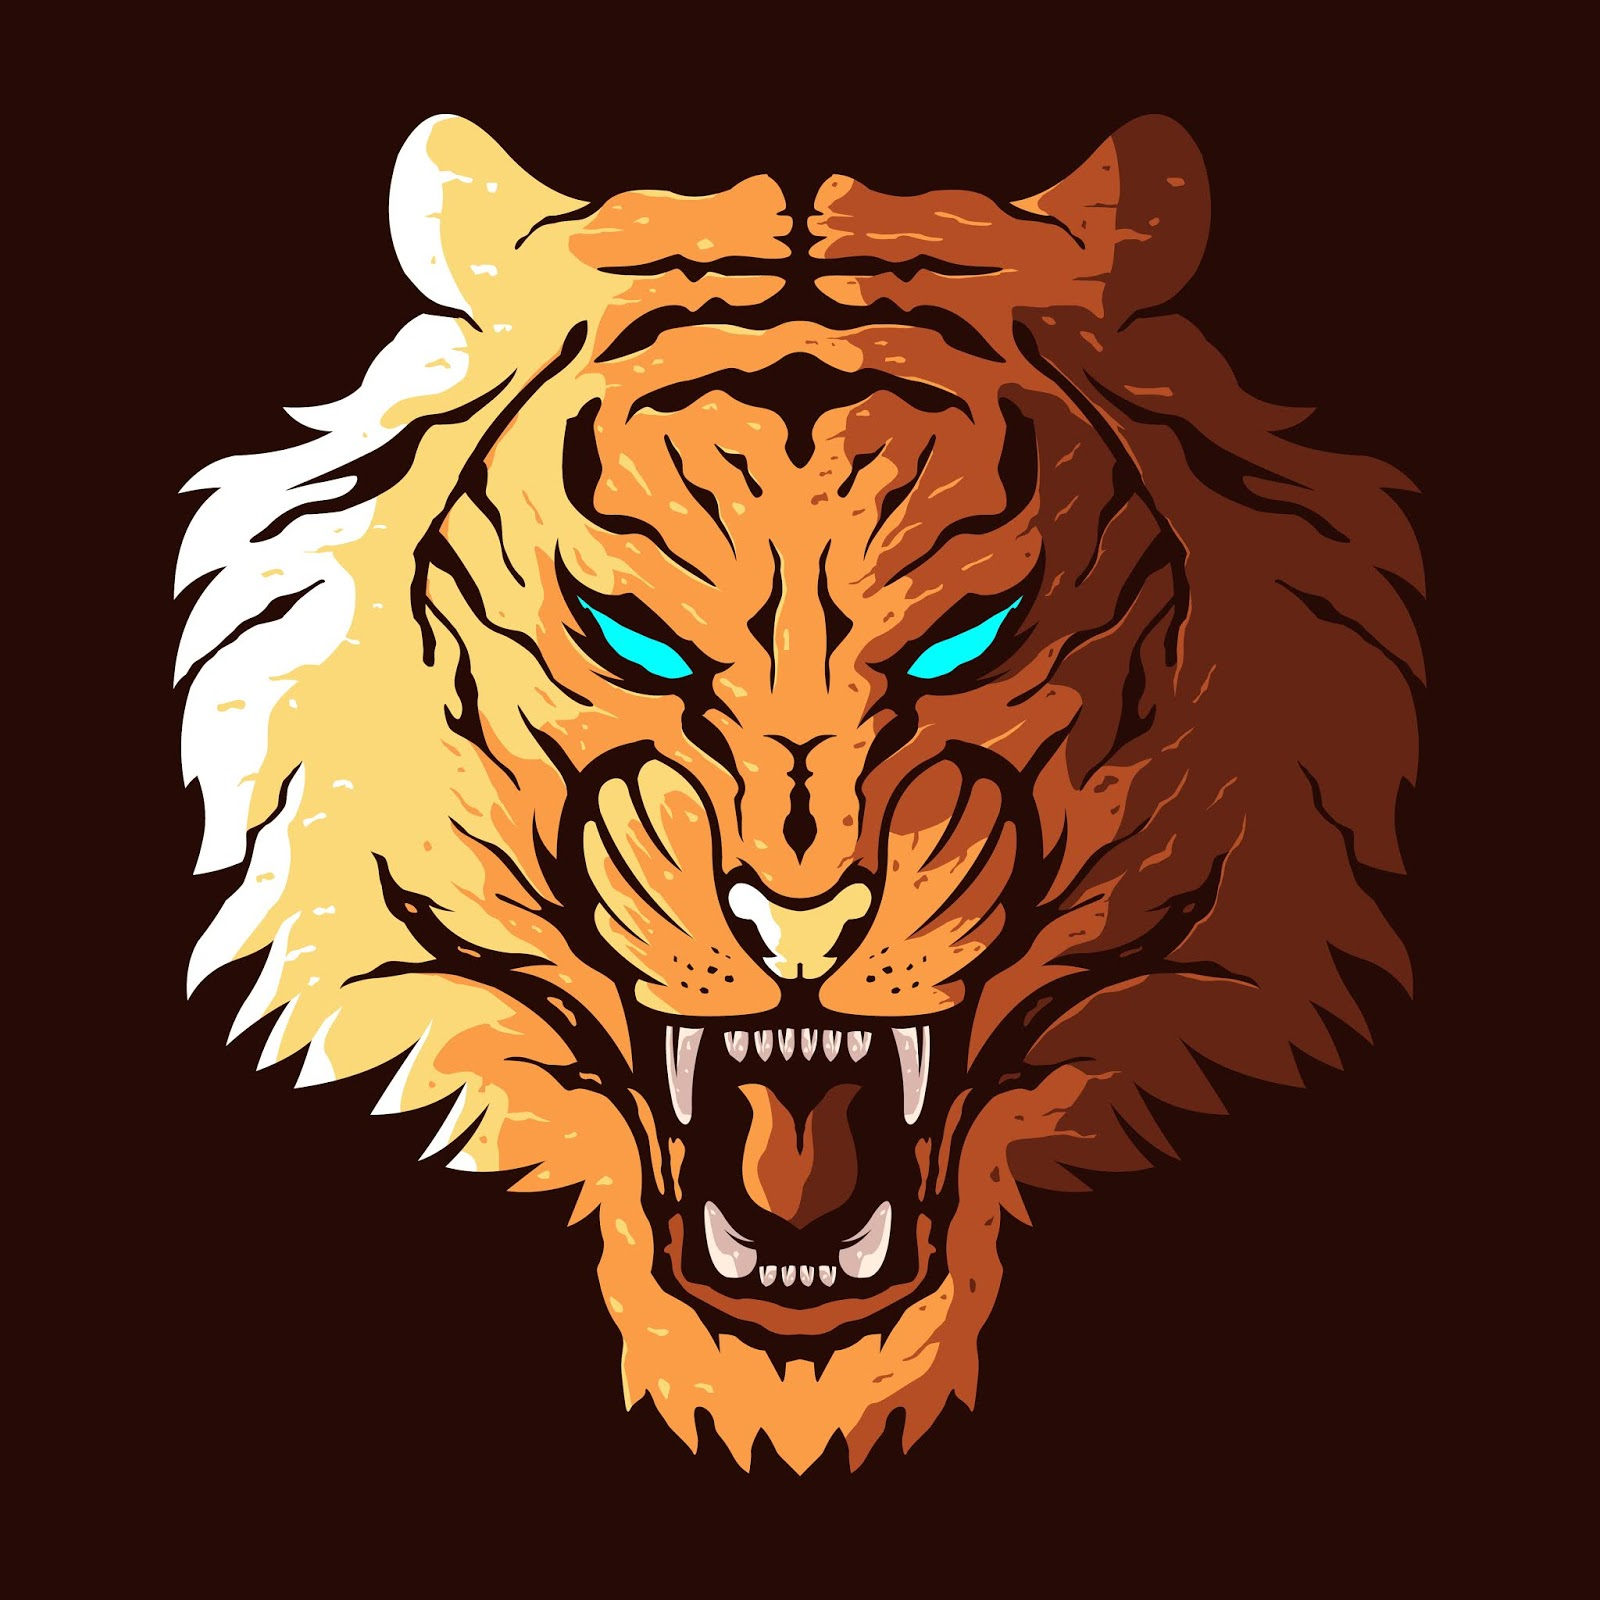 Angry Tiger Head Free Download Vector CDR, AI, EPS and PNG Formats